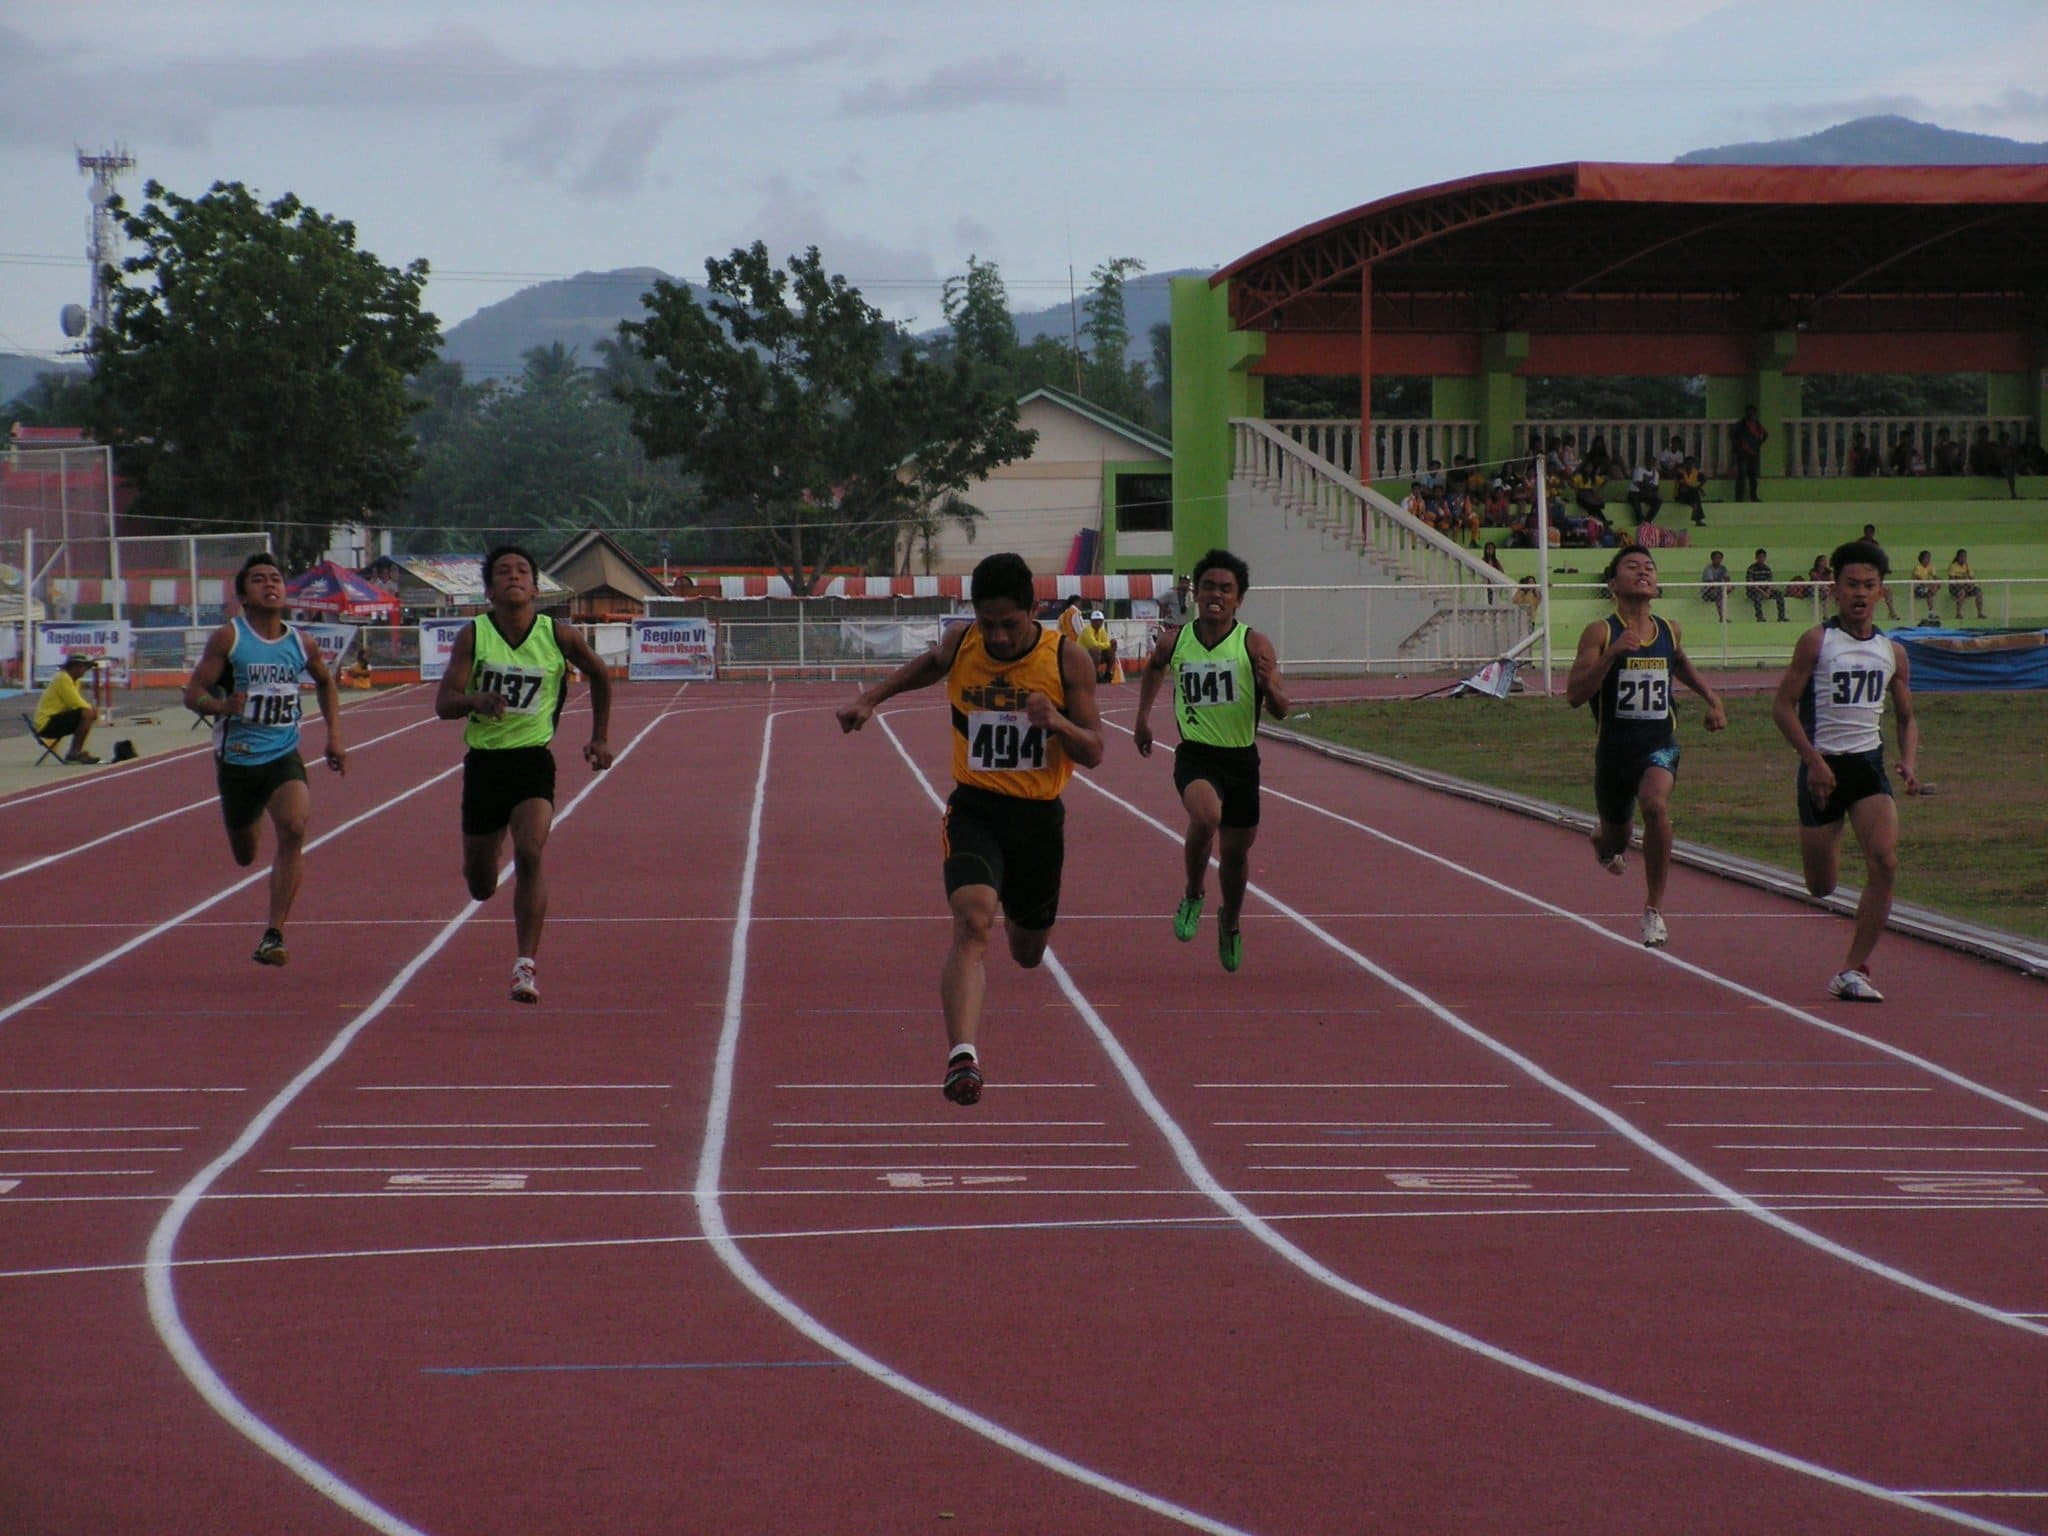 Udtohan in his final stretch in 200m crafting grand slam in Palaro sprints.